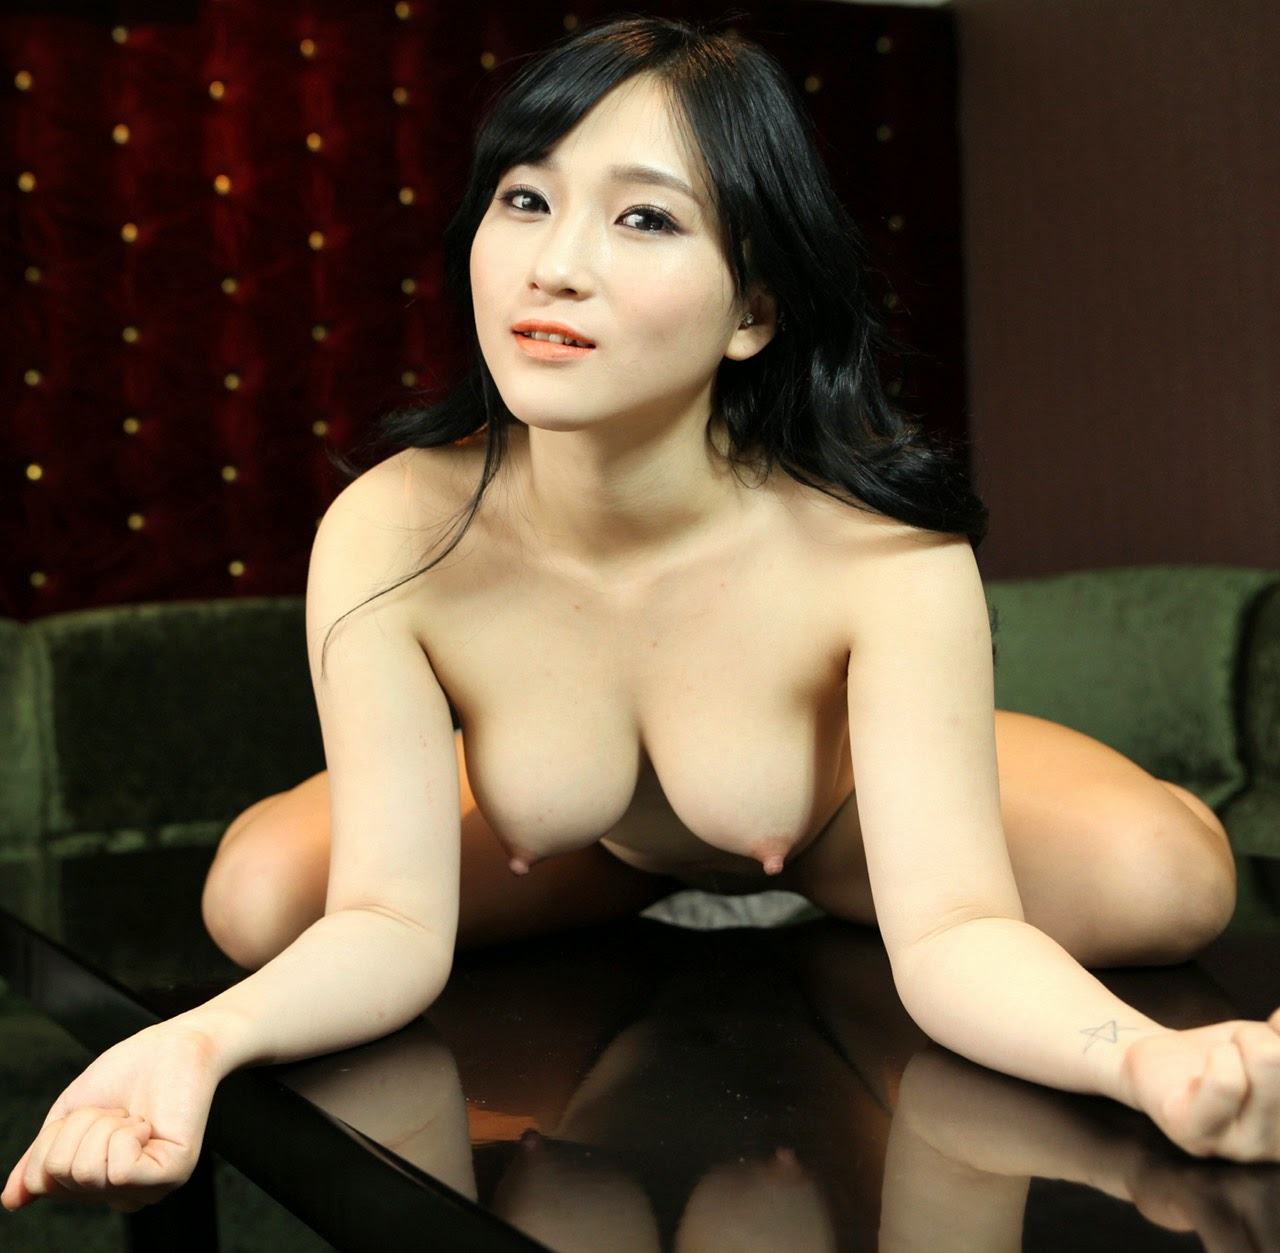 korea model nude photo